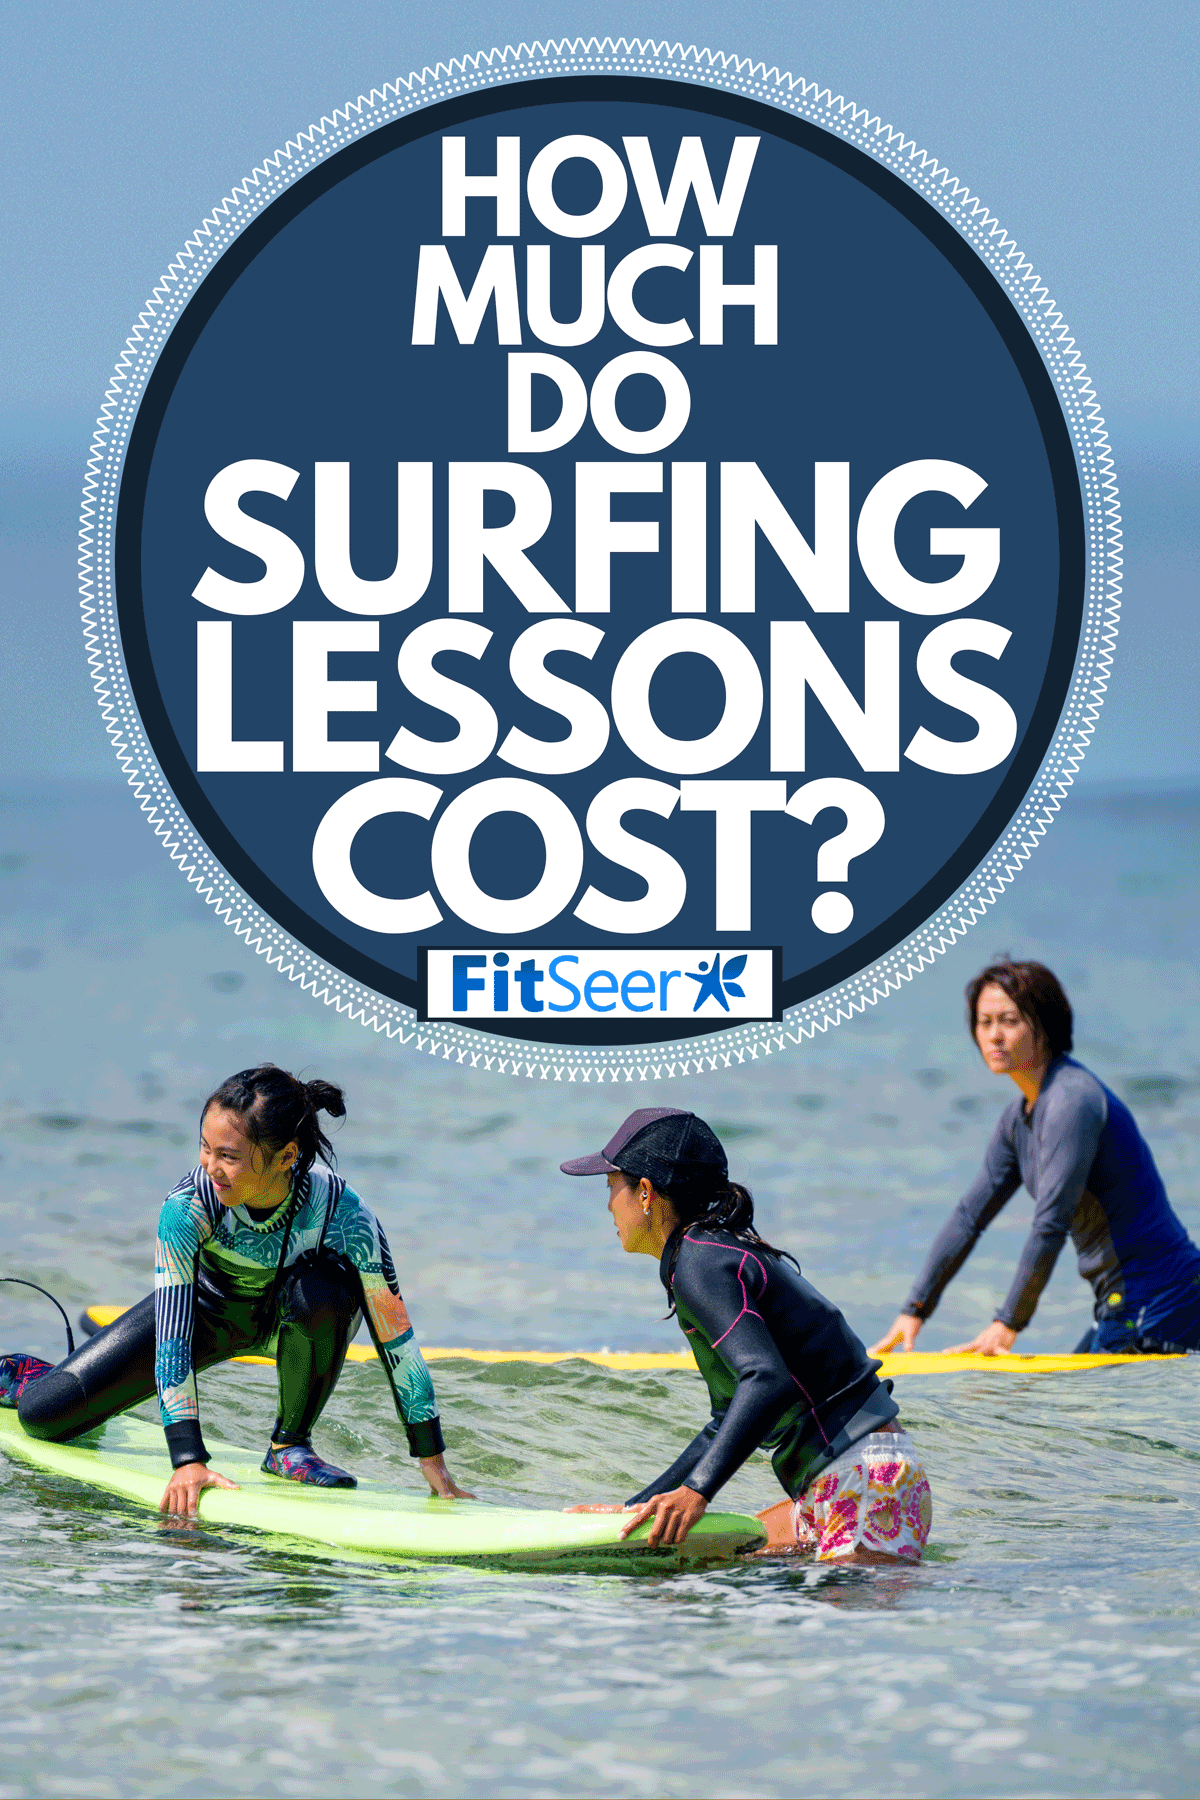 A young female taking surfing lessons, How Much Do Surfing Lessons Cost?